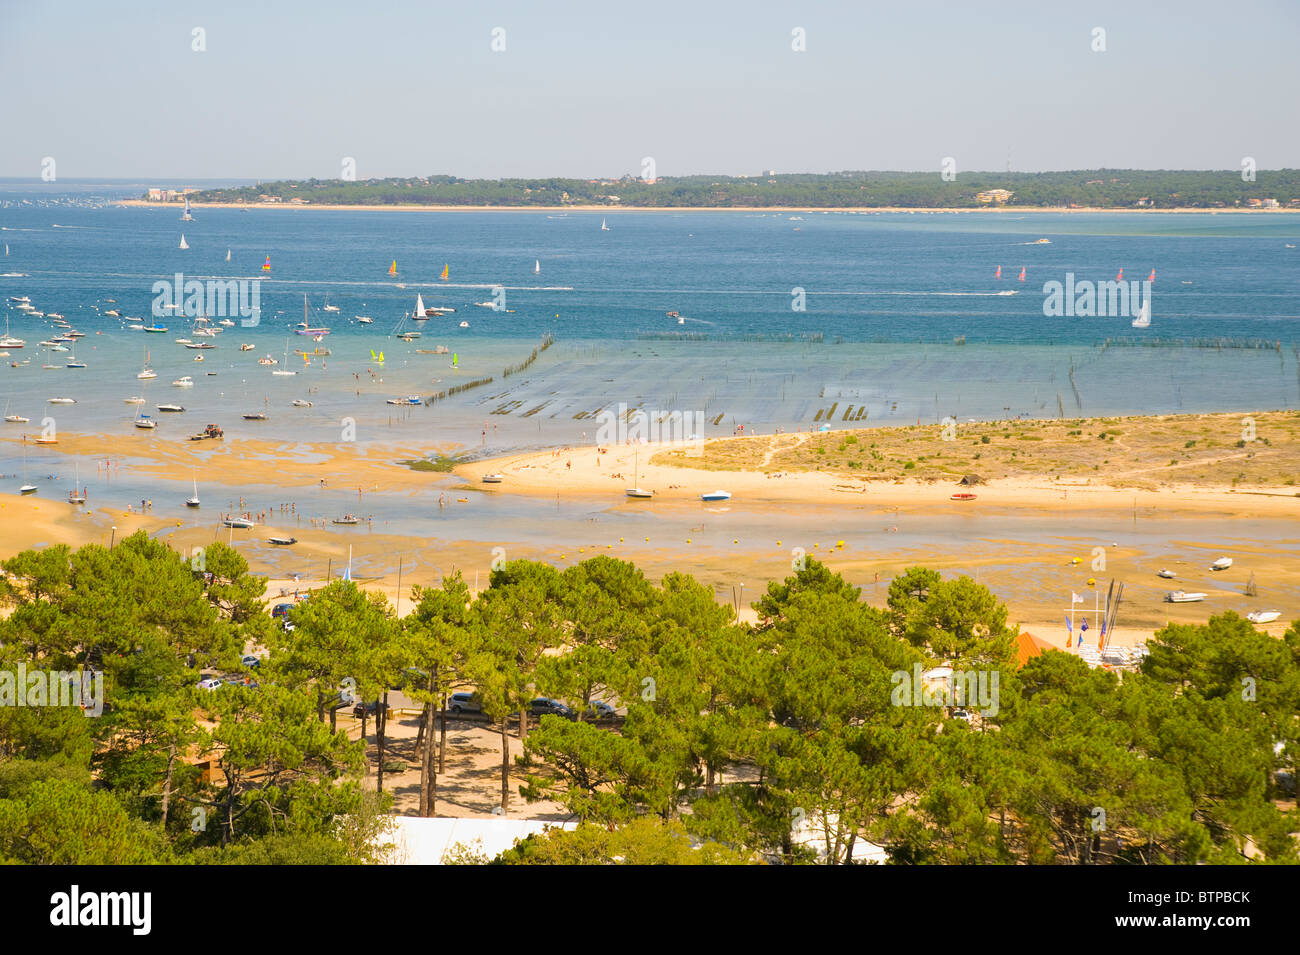 Aerial of Arcachon Basin, Gironde, Aquitaine, France - Stock Image